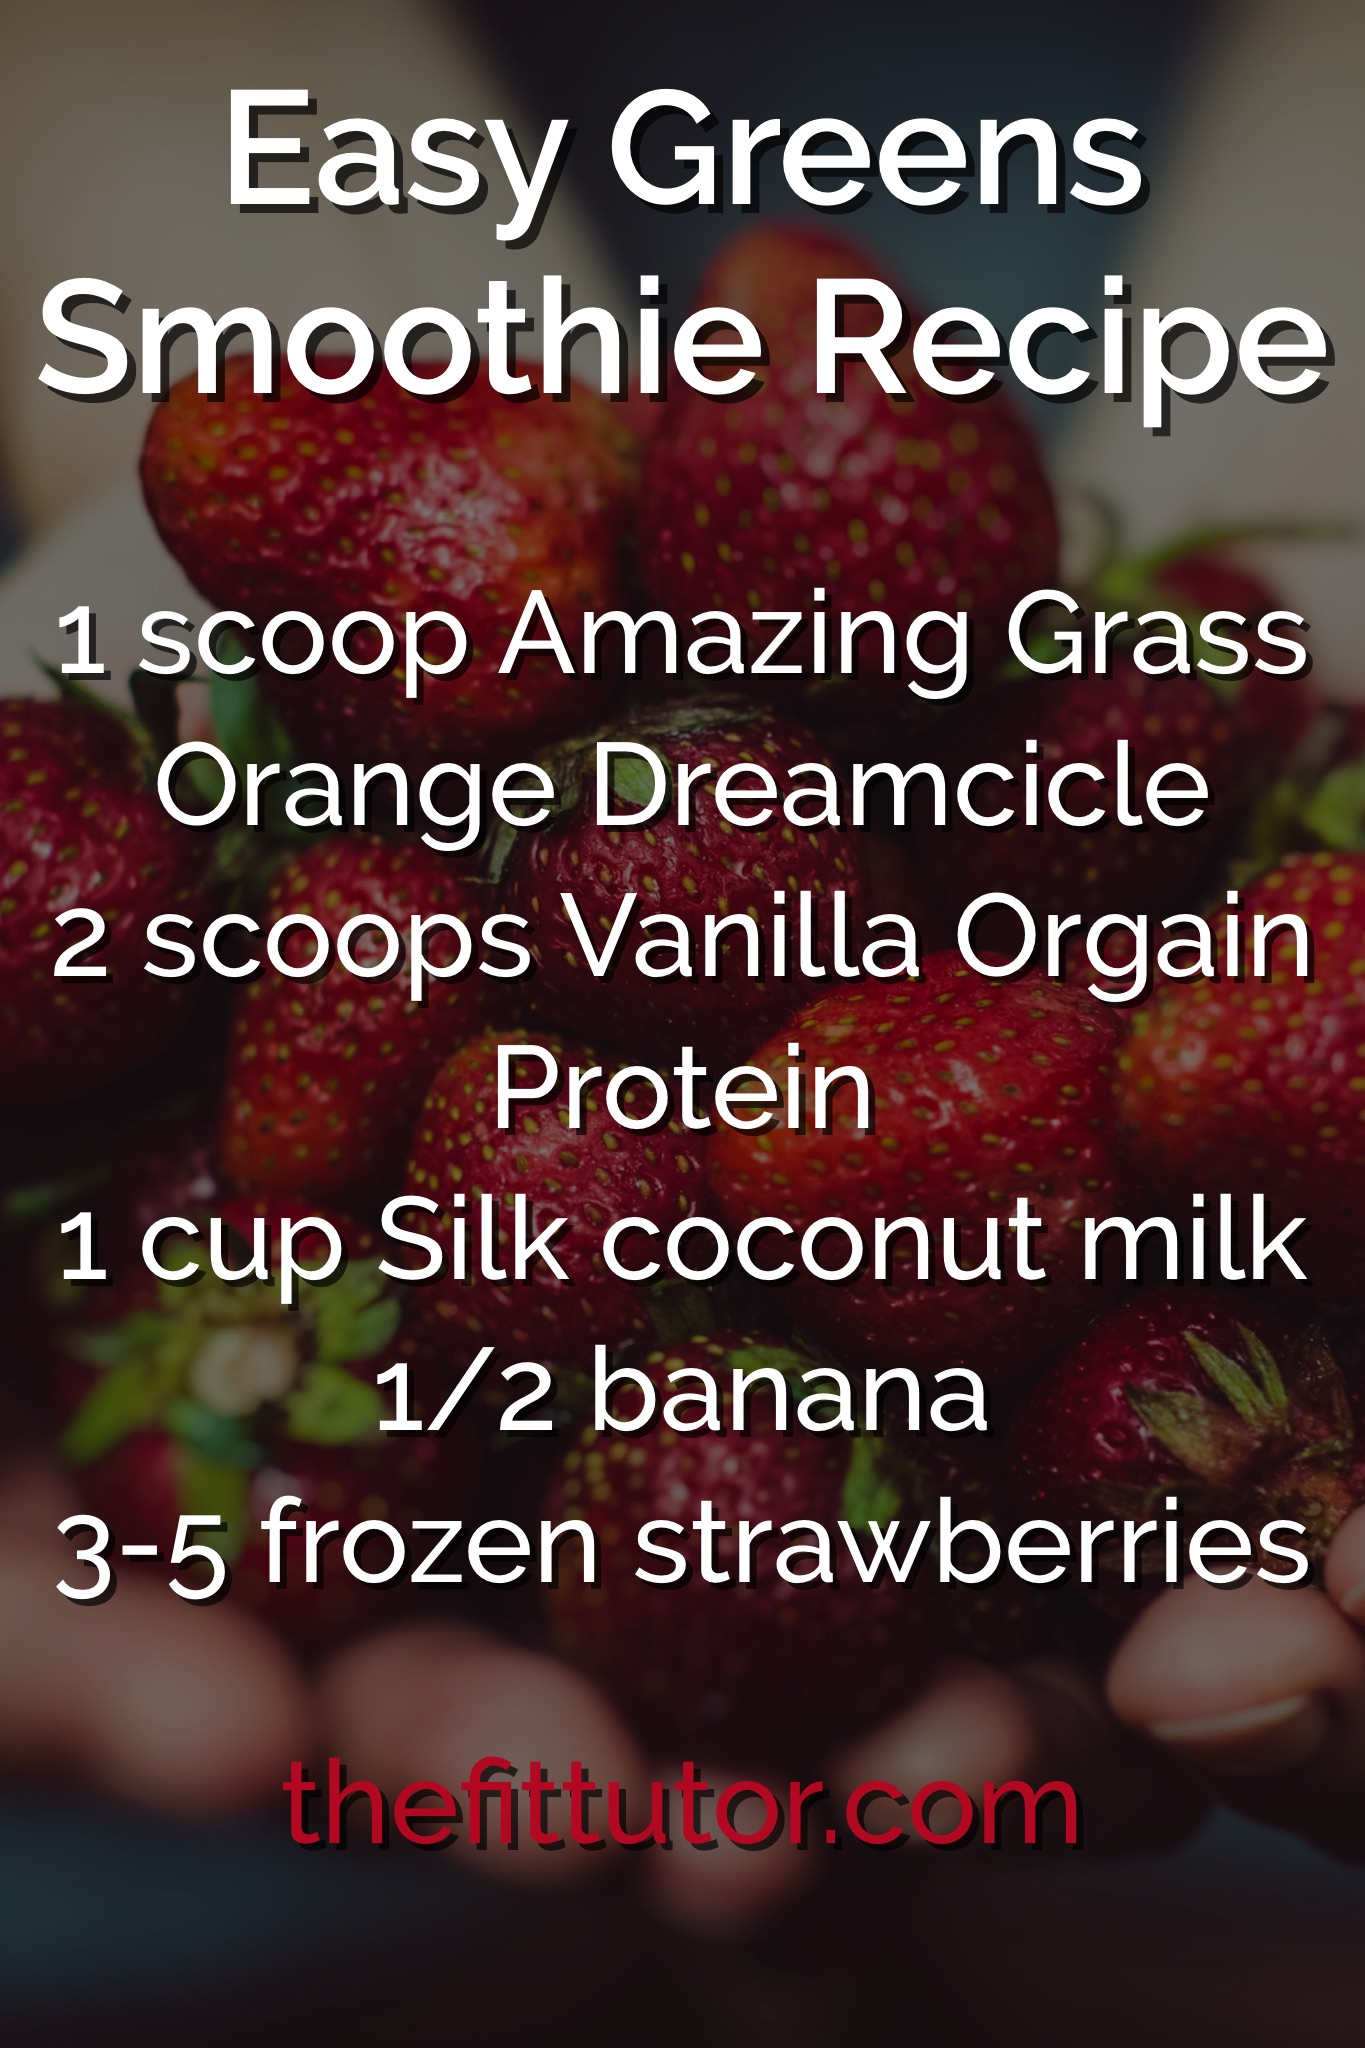 Splurging this holiday season? We replace our normal healthier foods for our cravings and once a year treats- have this smoothie daily to help ensure you get enough protein and greens/veggies while you're being naughty!